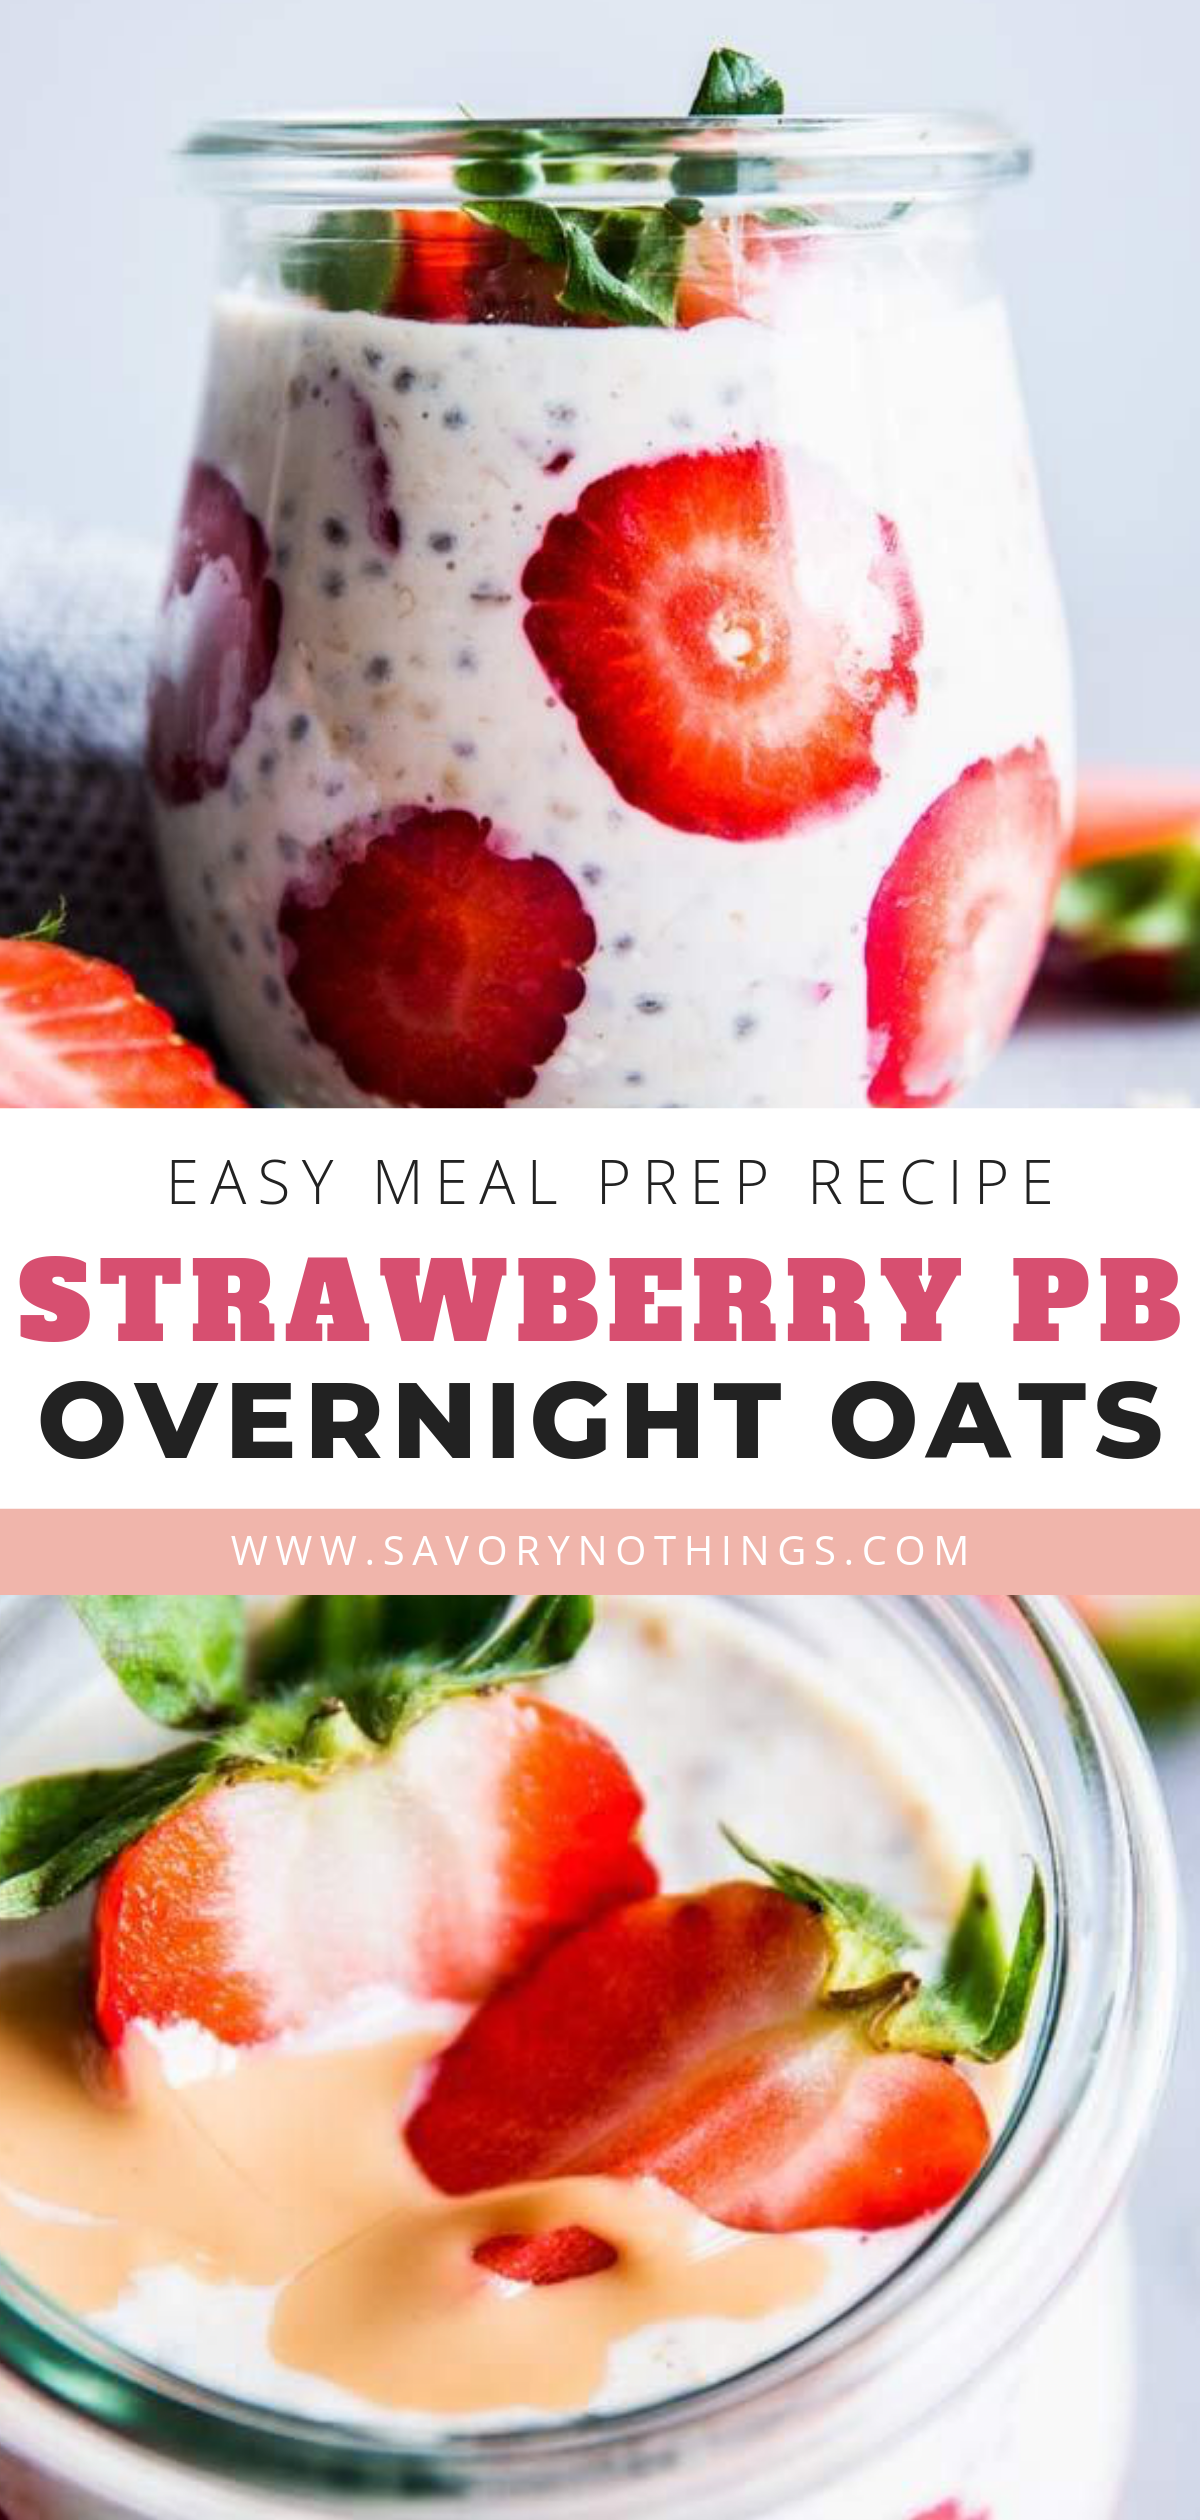 Strawberry Peanut Butter Overnight Oats are an easy and delicious make ahead breakfast the whole family will love. Perfect for easy meal prep when you have a busy morning ahead! You can make them in individual jars to take them on the go, or make a large batch in a single bowl if you're feeding a crowd - so easy! |